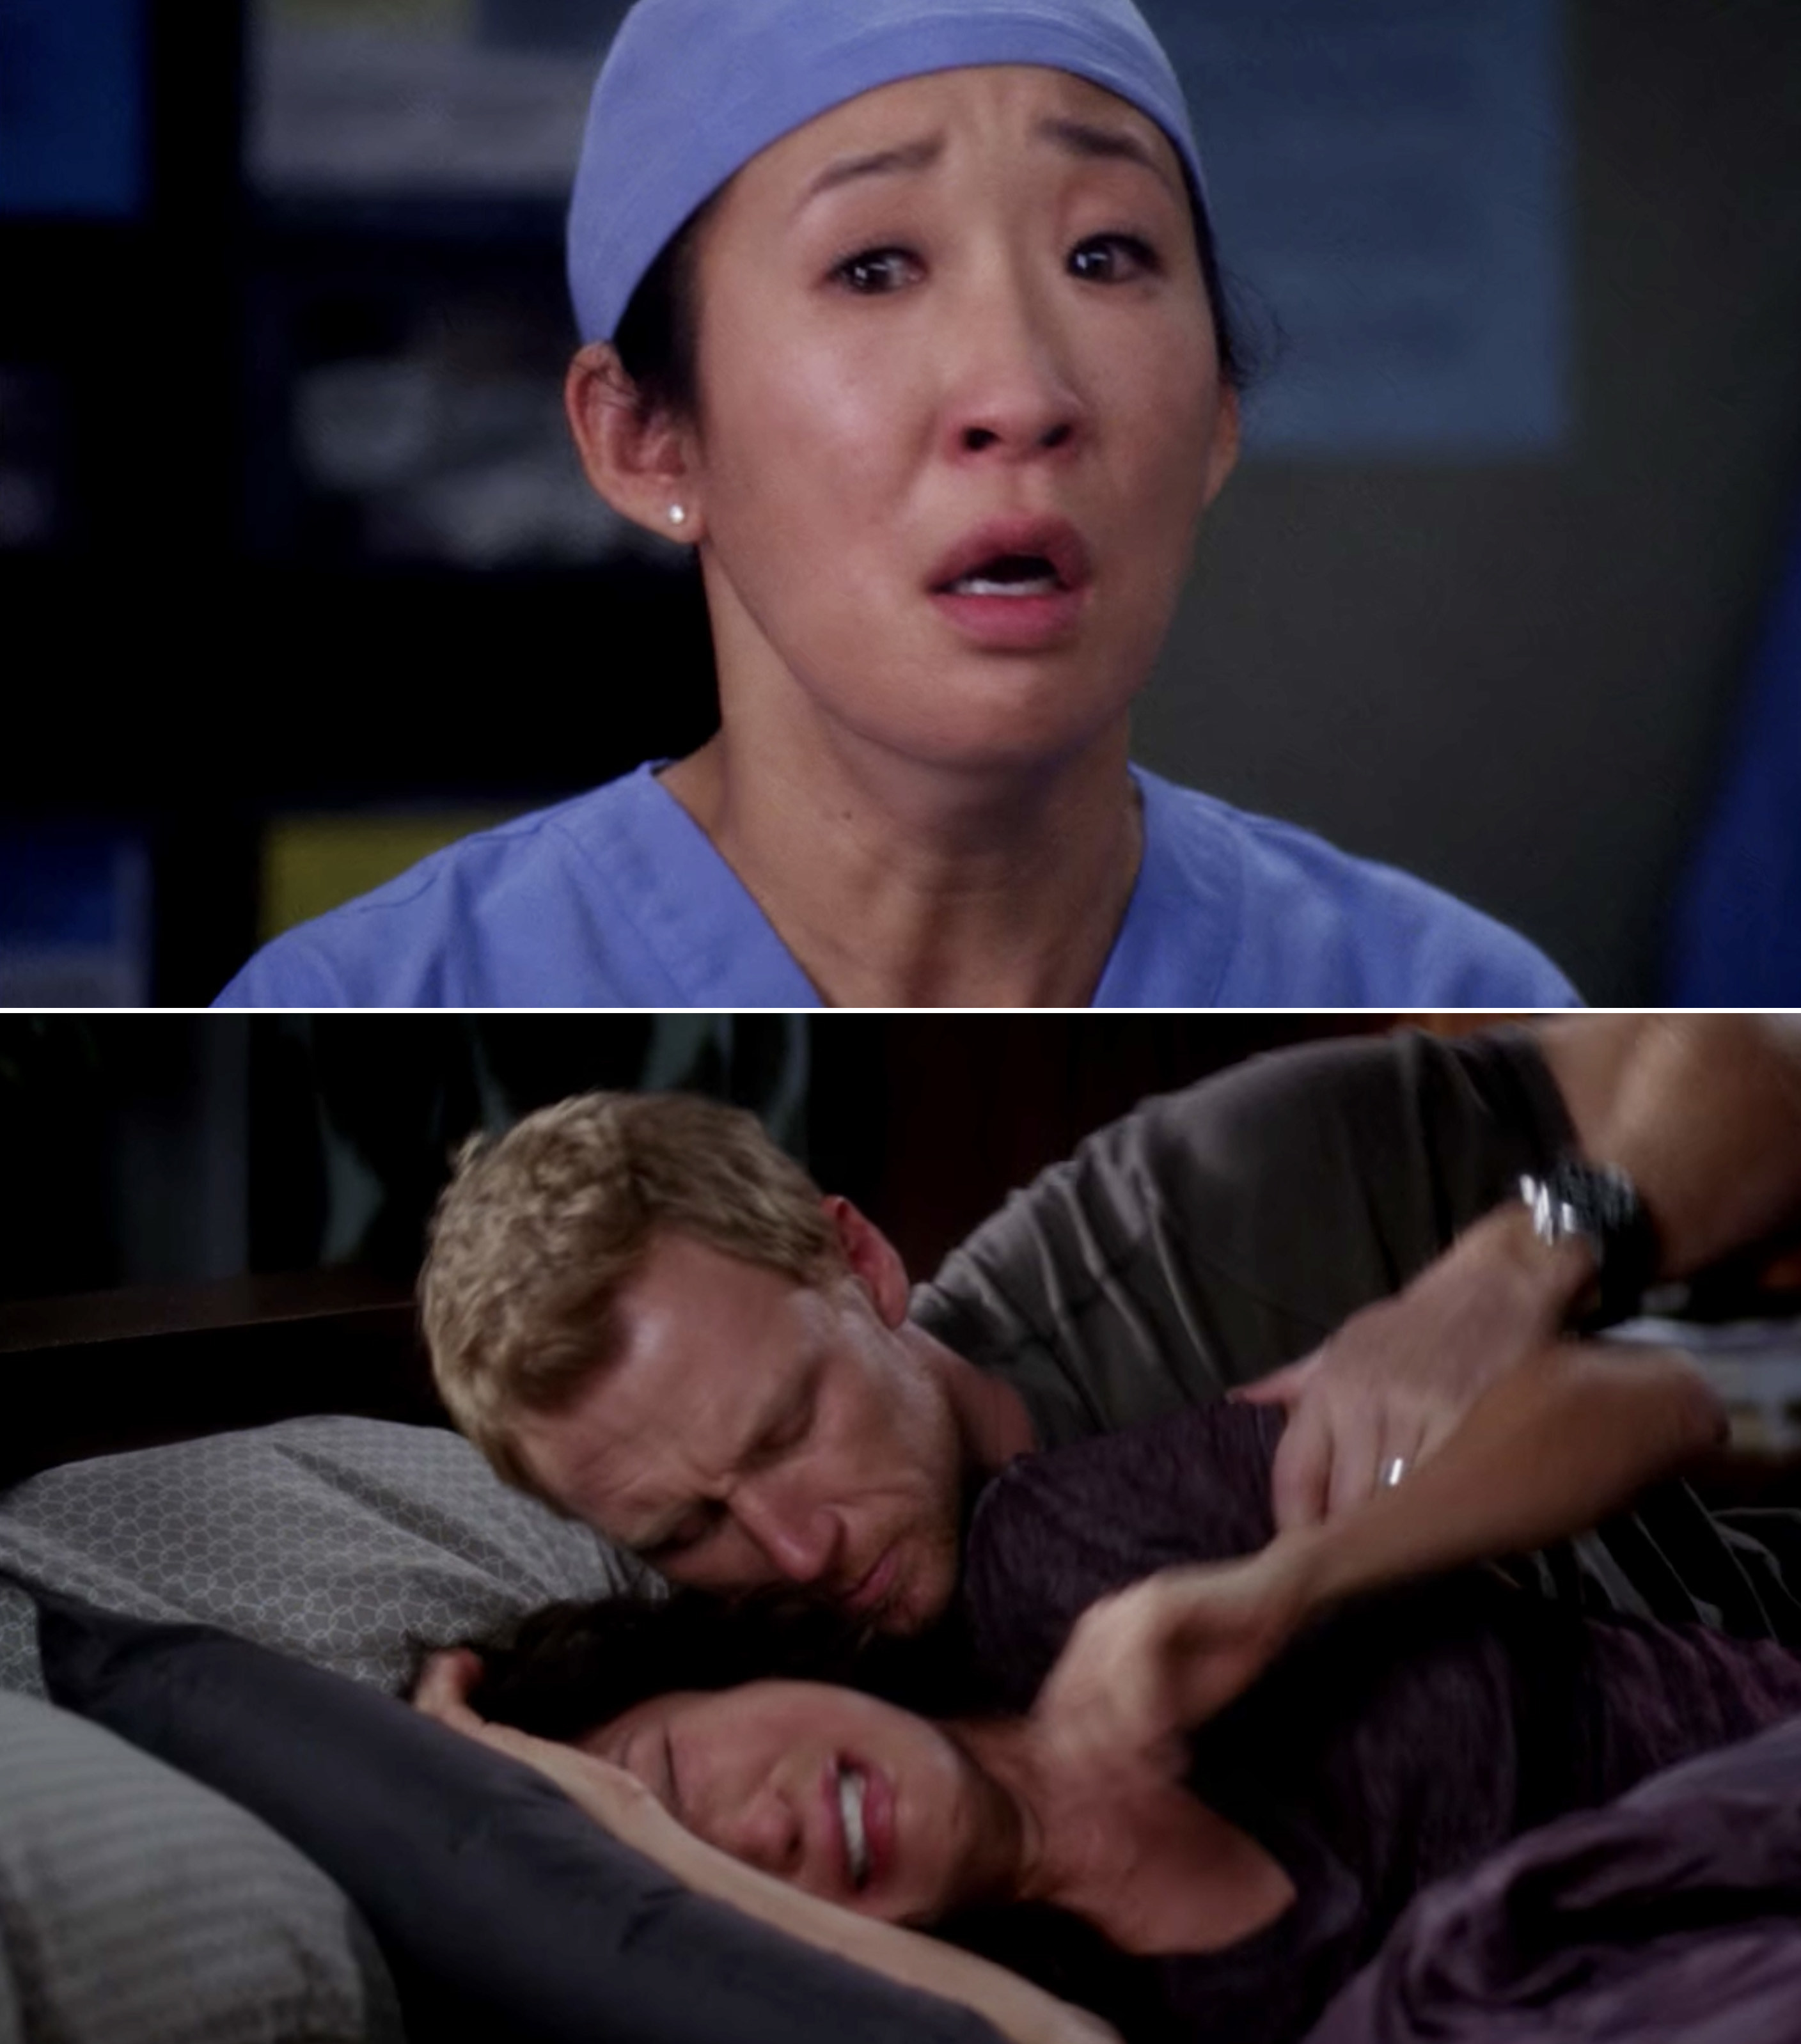 Cristina with tears in her eyes and then Cristina sobbing on the bed with Owen trying to hold her